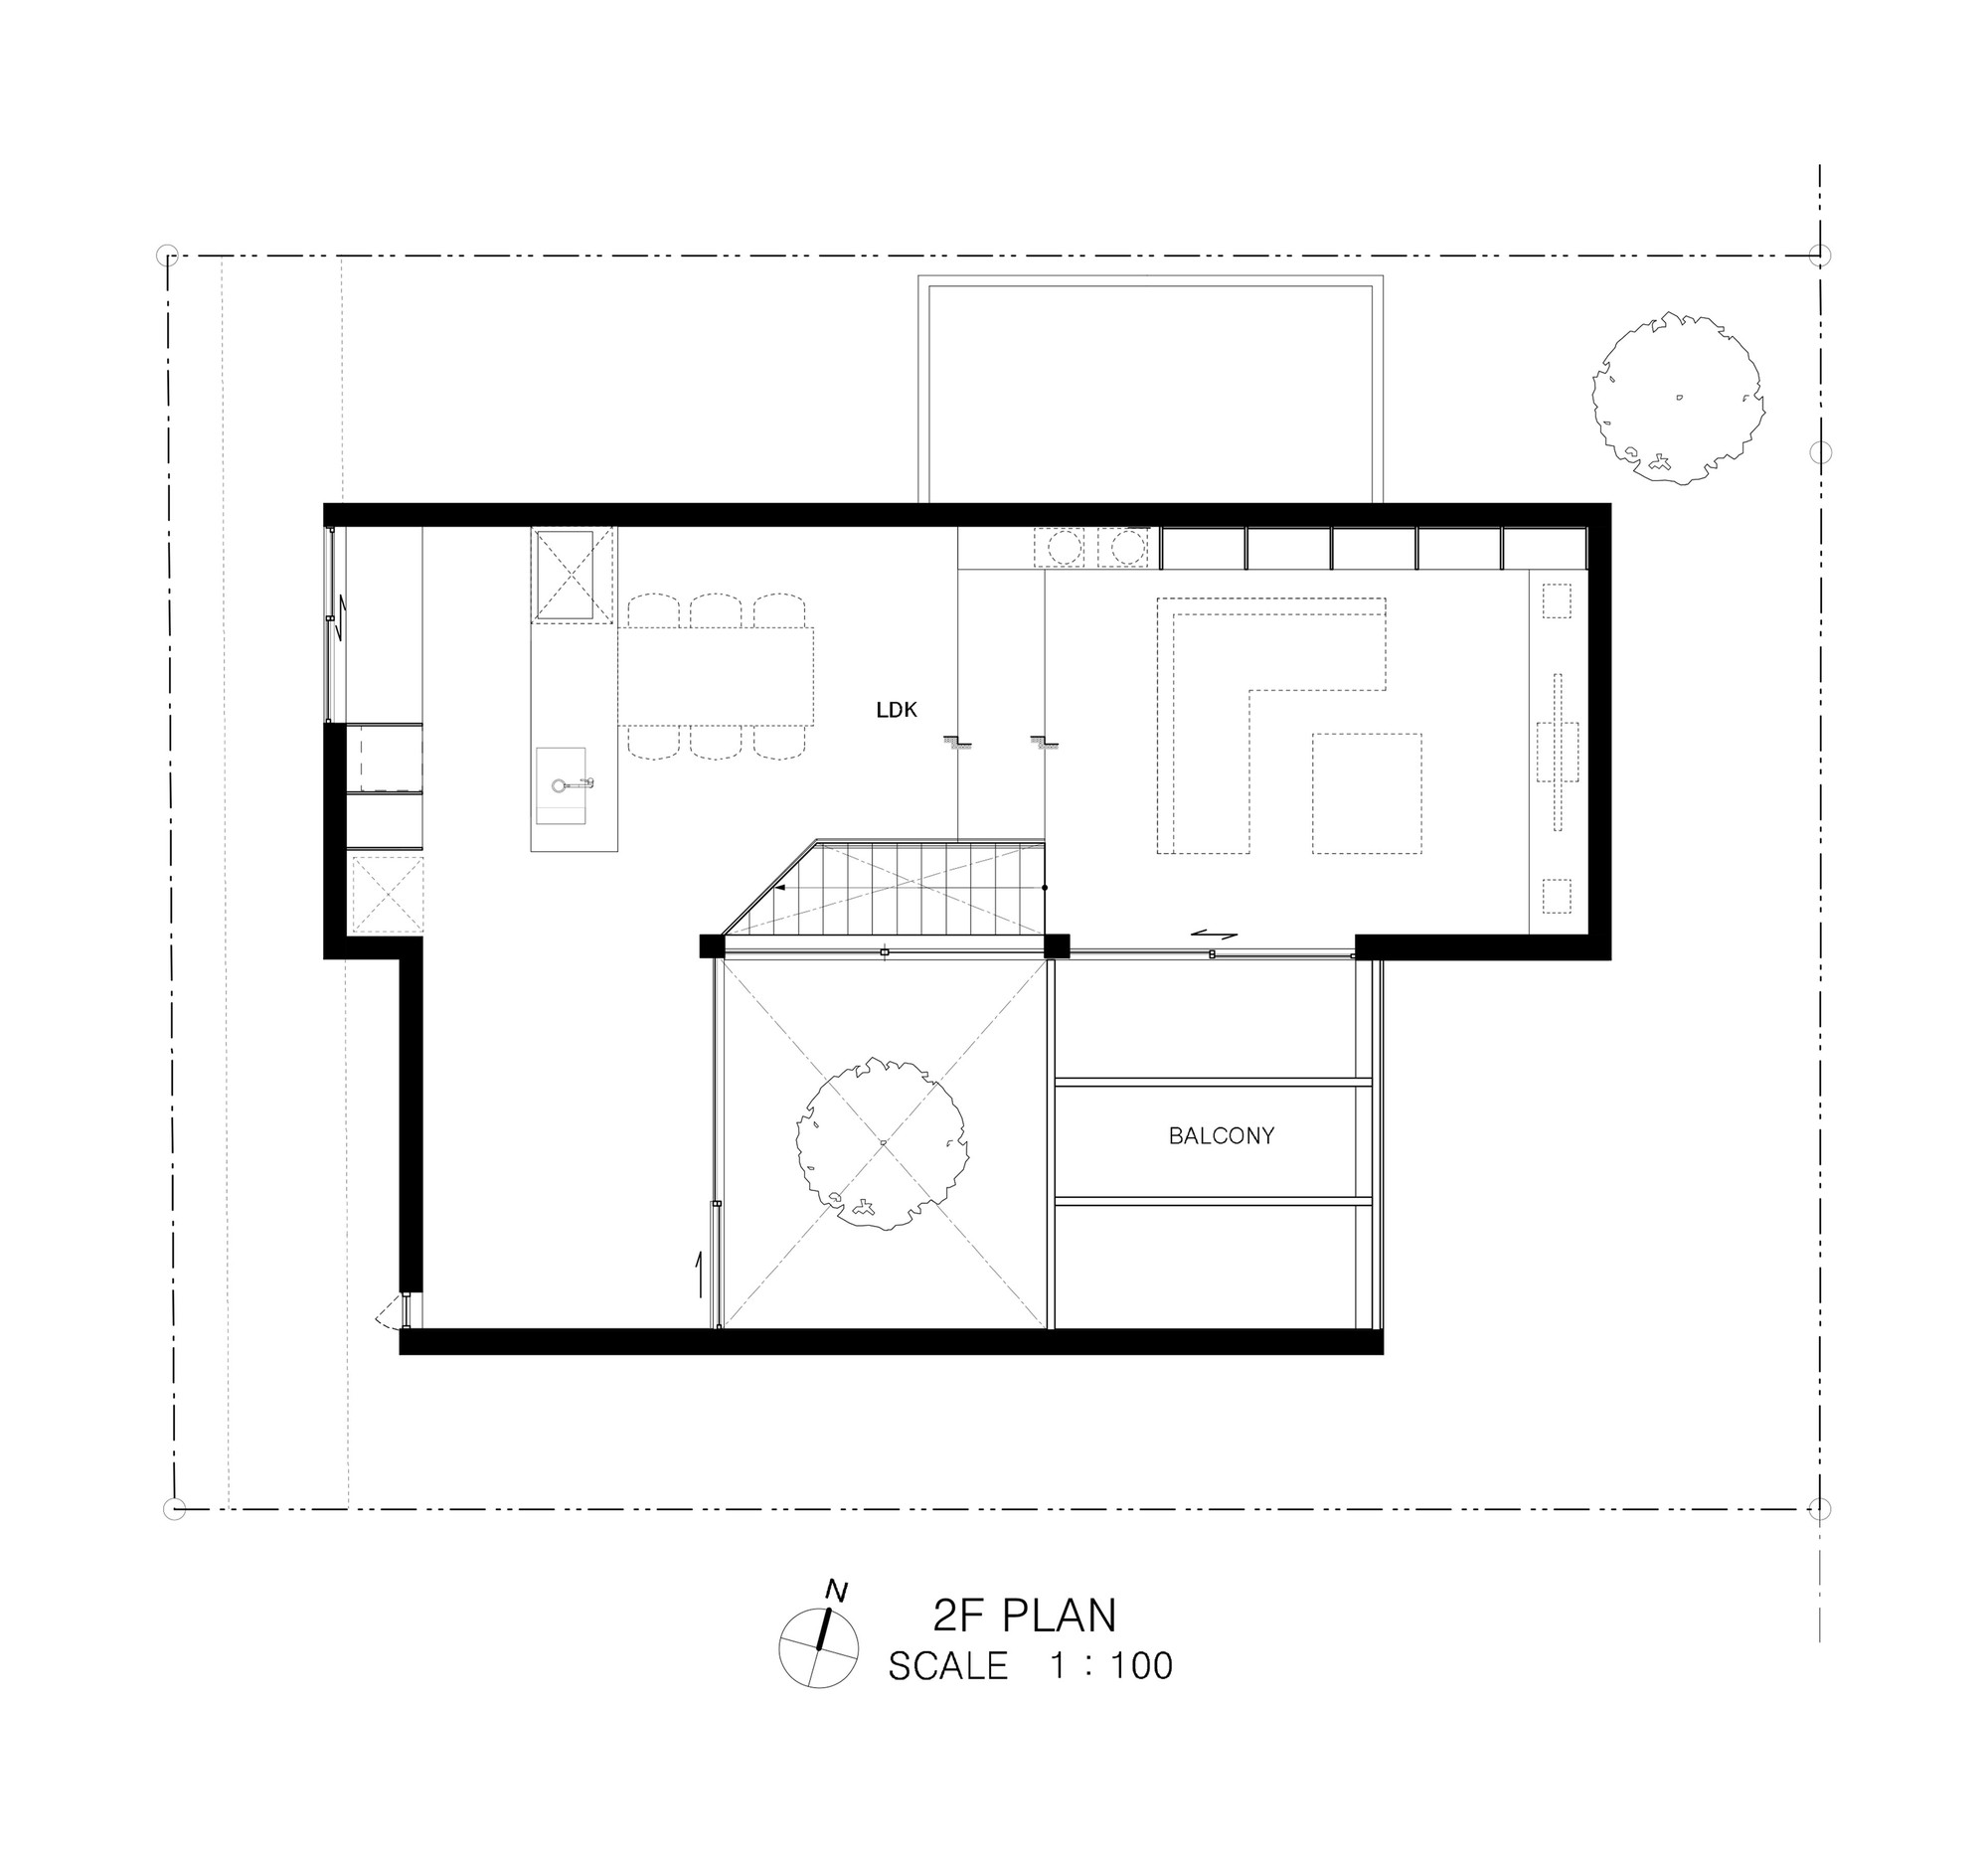 Patio House Apollo Architects And Associates in addition Steel Carports Plans together with Carports Lean To Wooden Metal Carport Kits in addition Home Attic And Rooftop as well Garage Plans Metal Building. on diy lean to carport